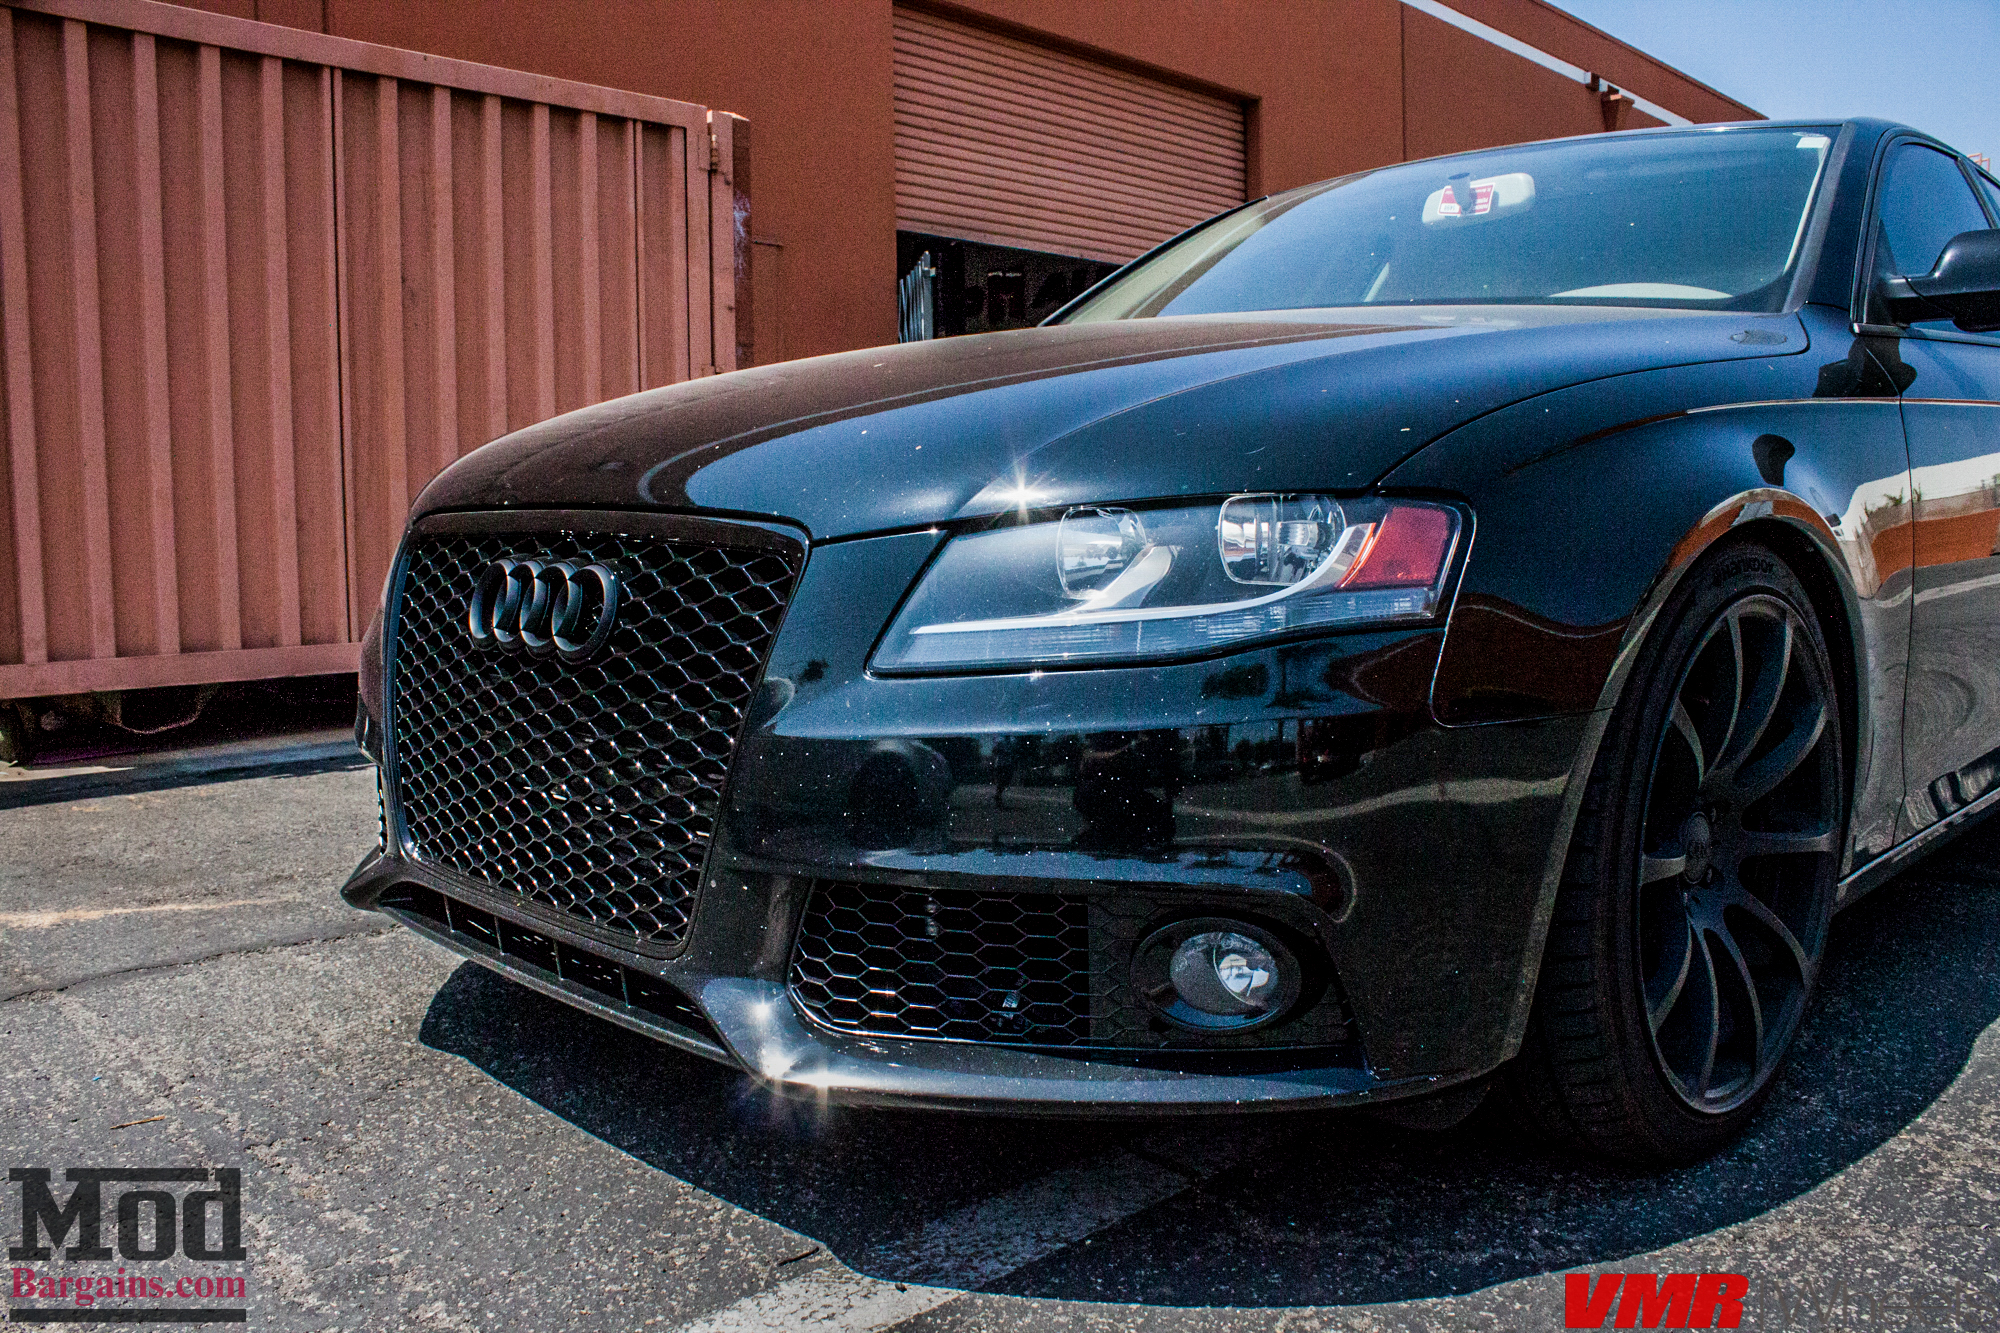 B8 Audi A4 On Solo Werks Coilovers Gets Rs4 Grille